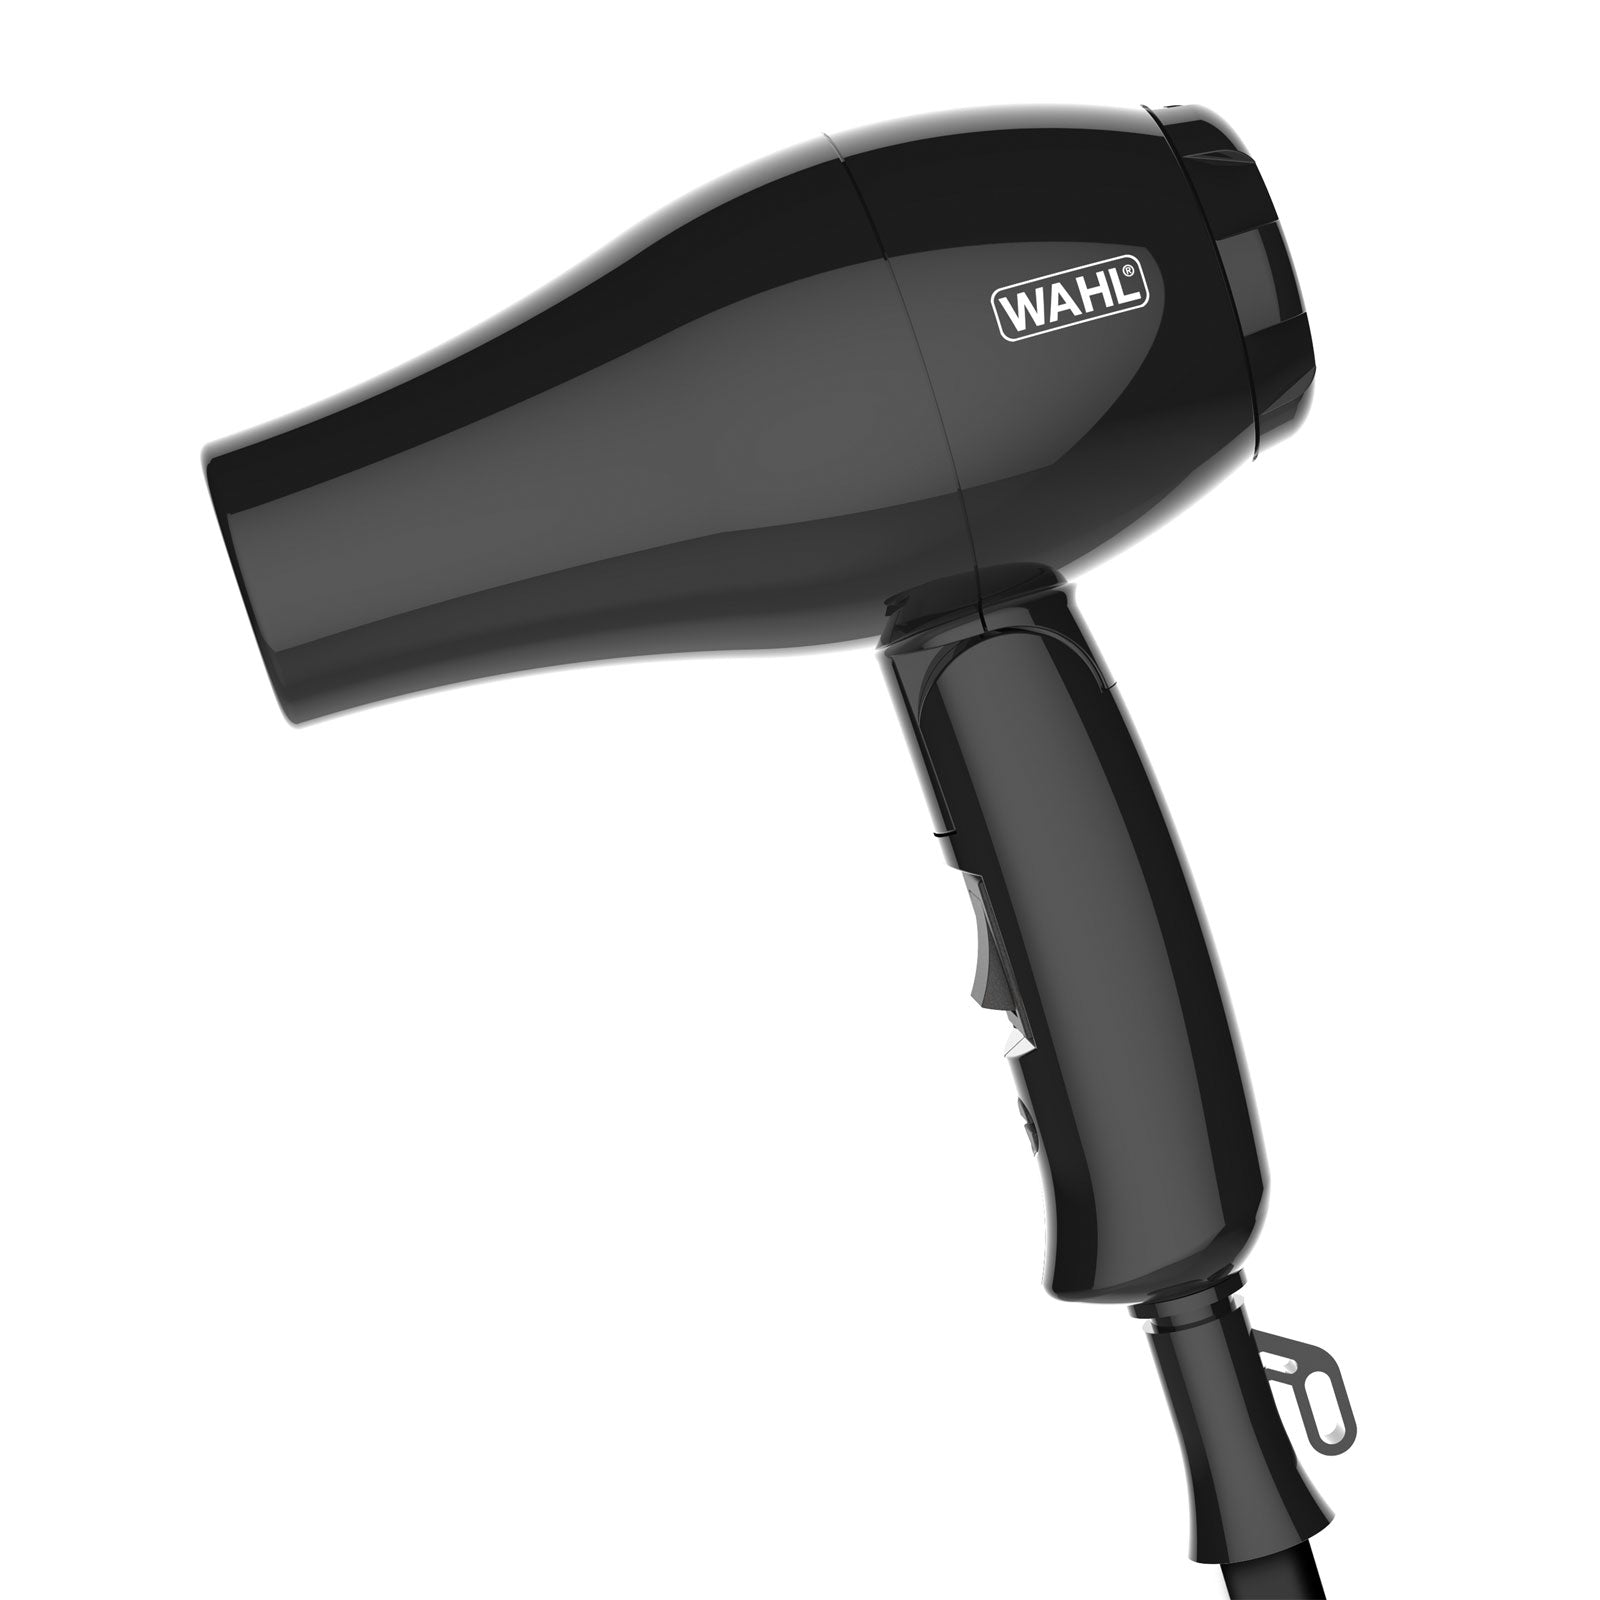 WAHL Travel Hairdryer